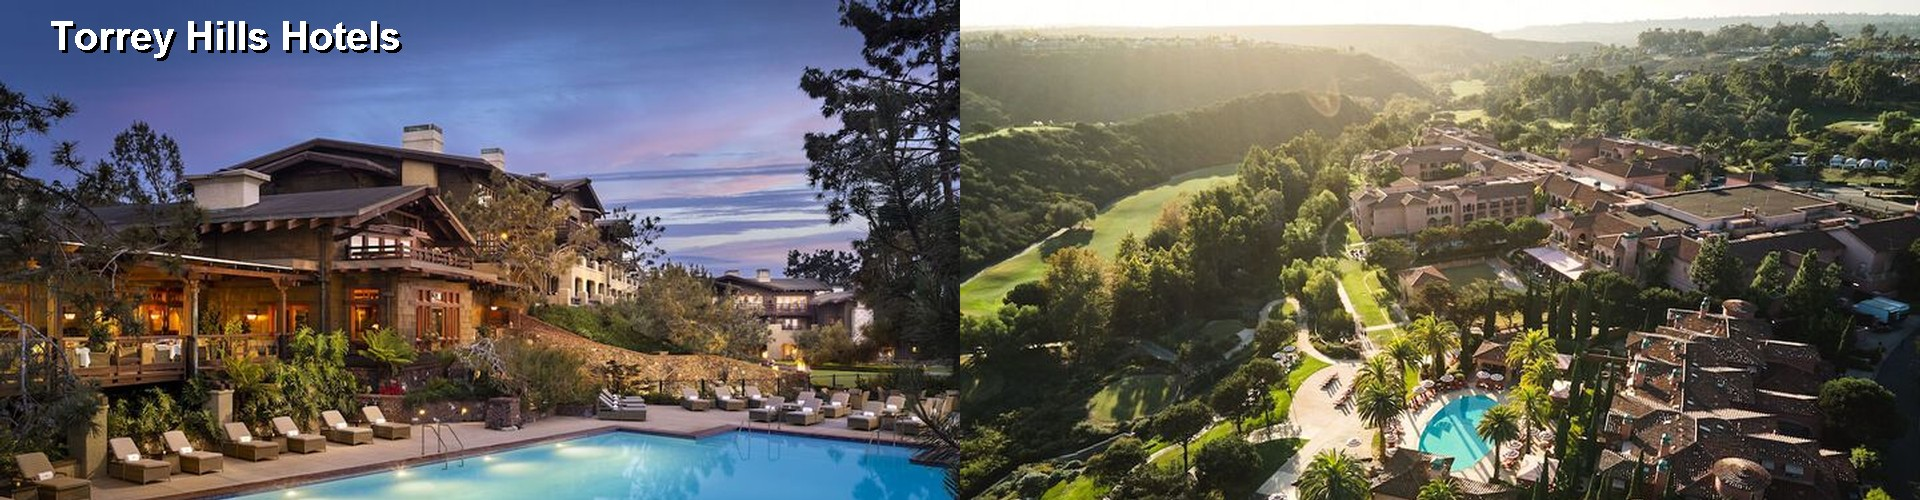 5 Best Hotels near Torrey Hills